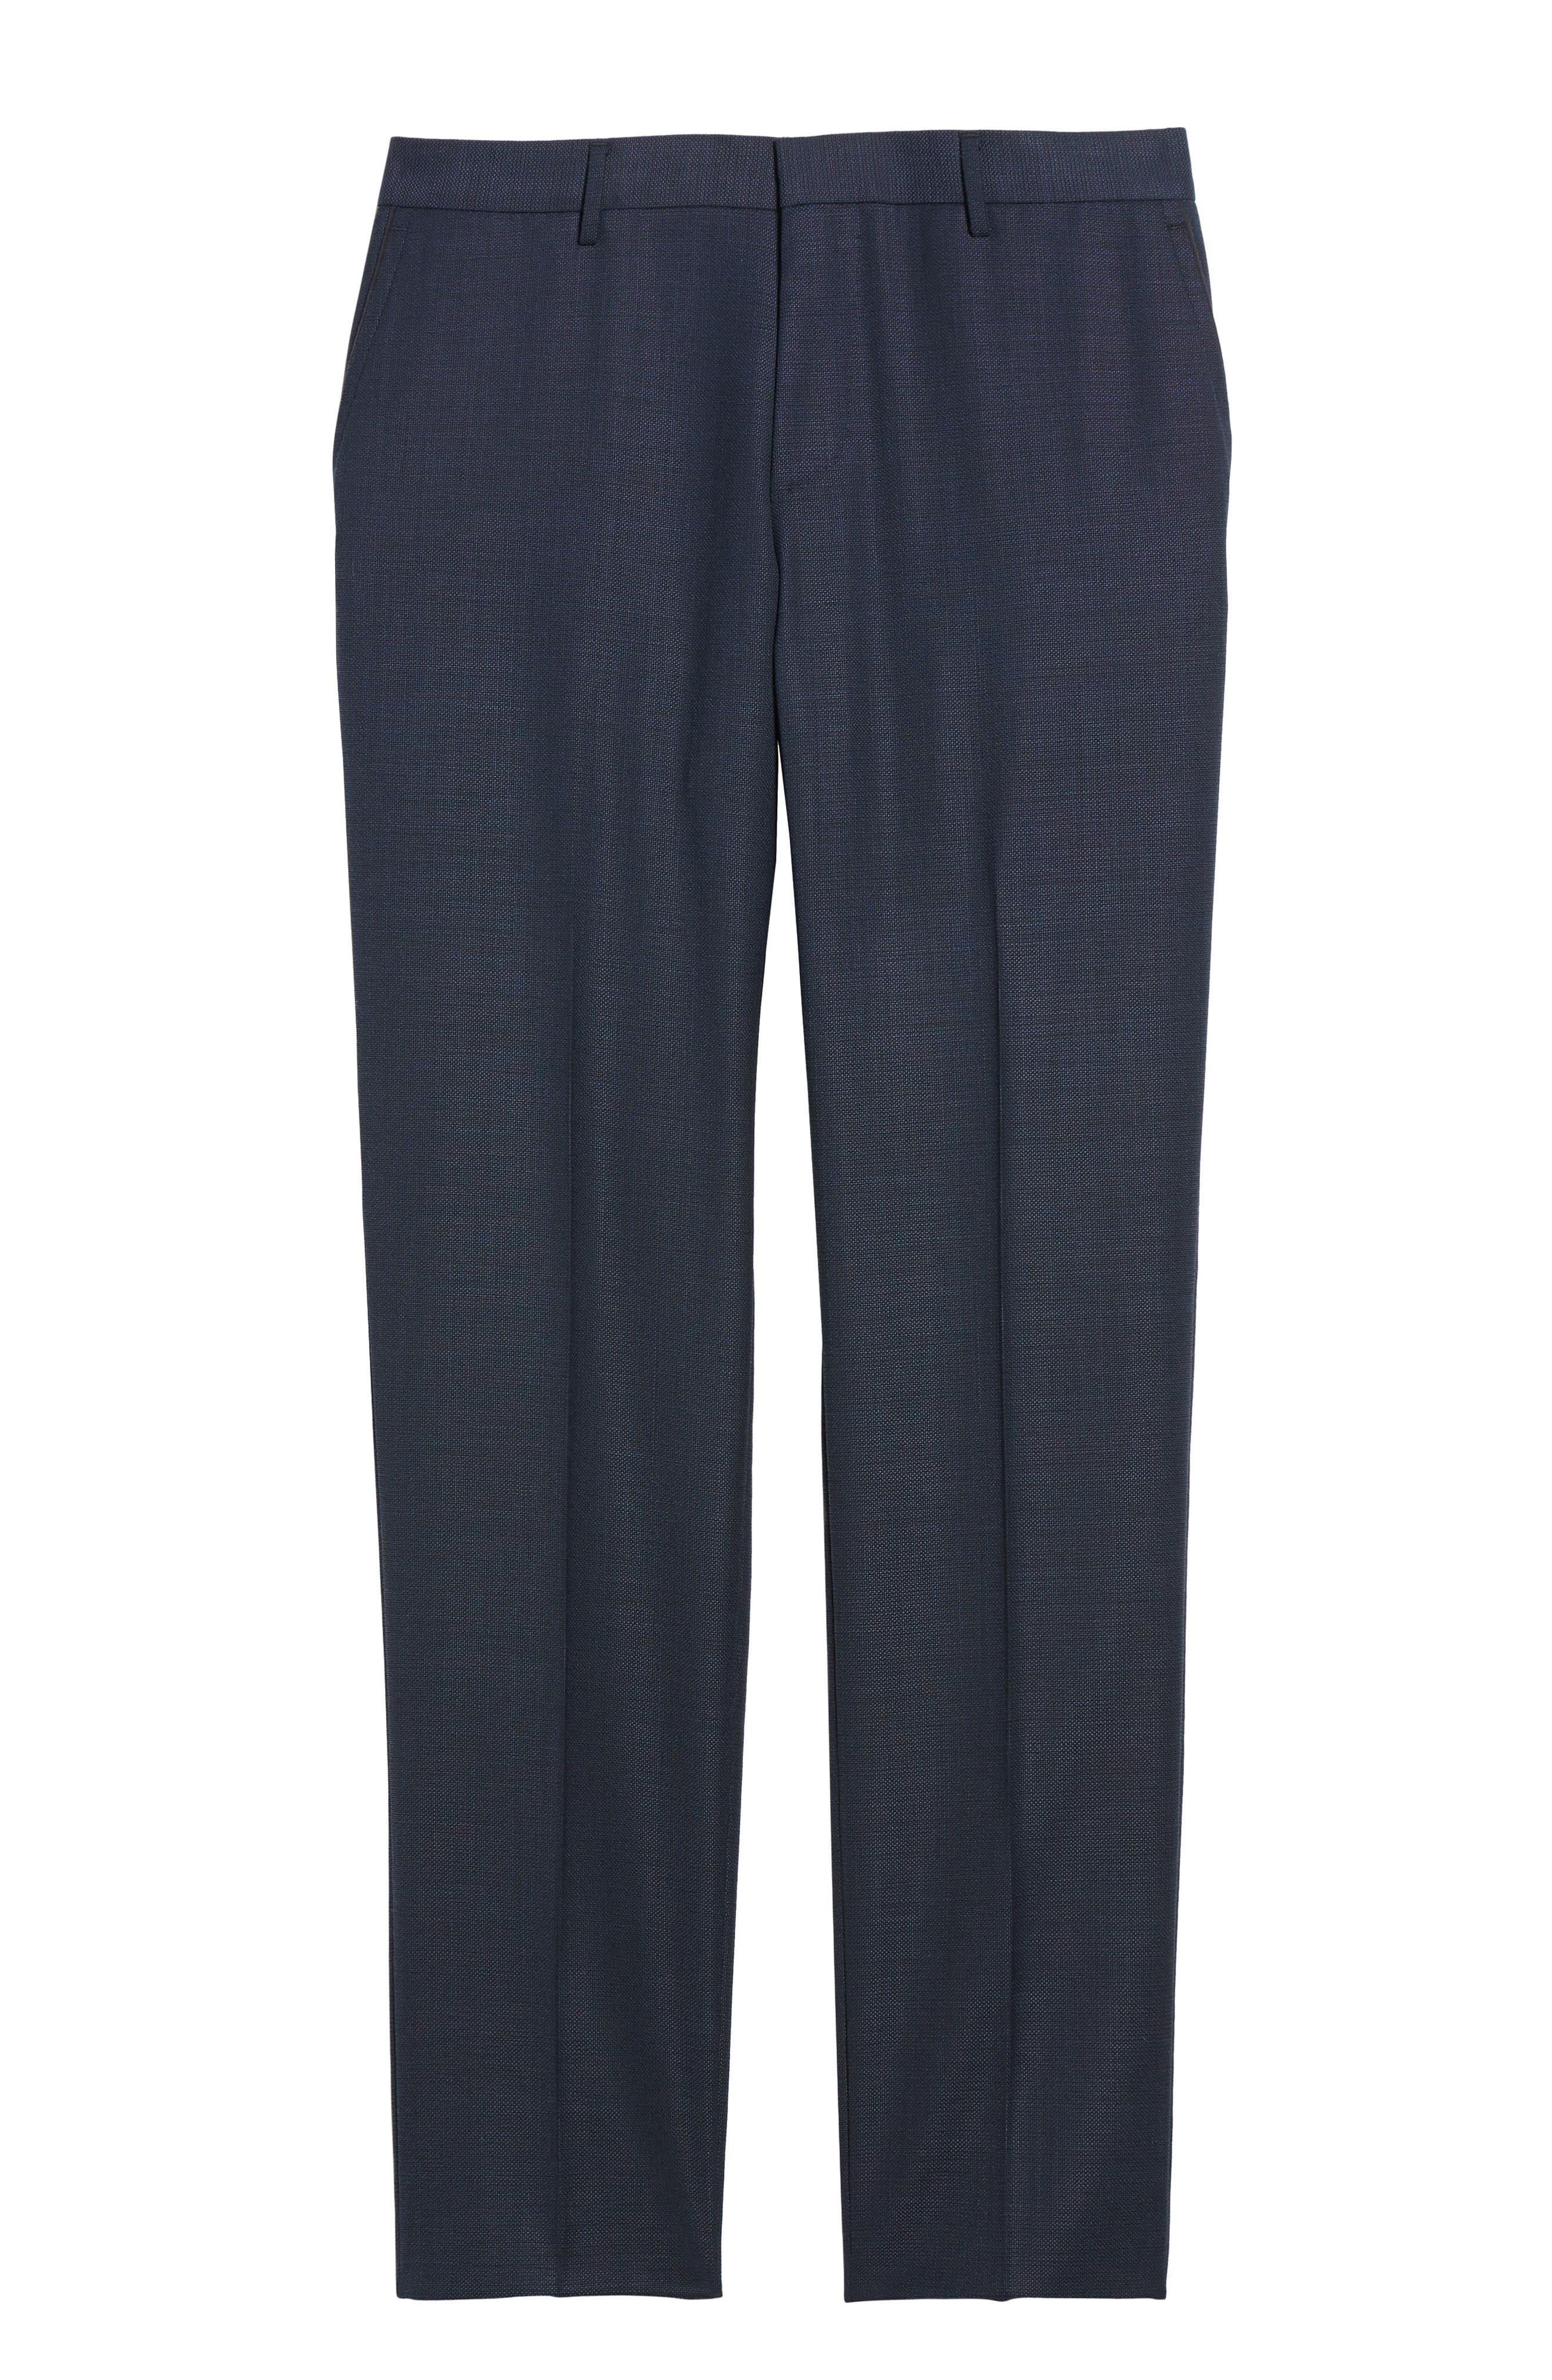 Blake Flat Front Solid Wool Trousers,                             Alternate thumbnail 6, color,                             401